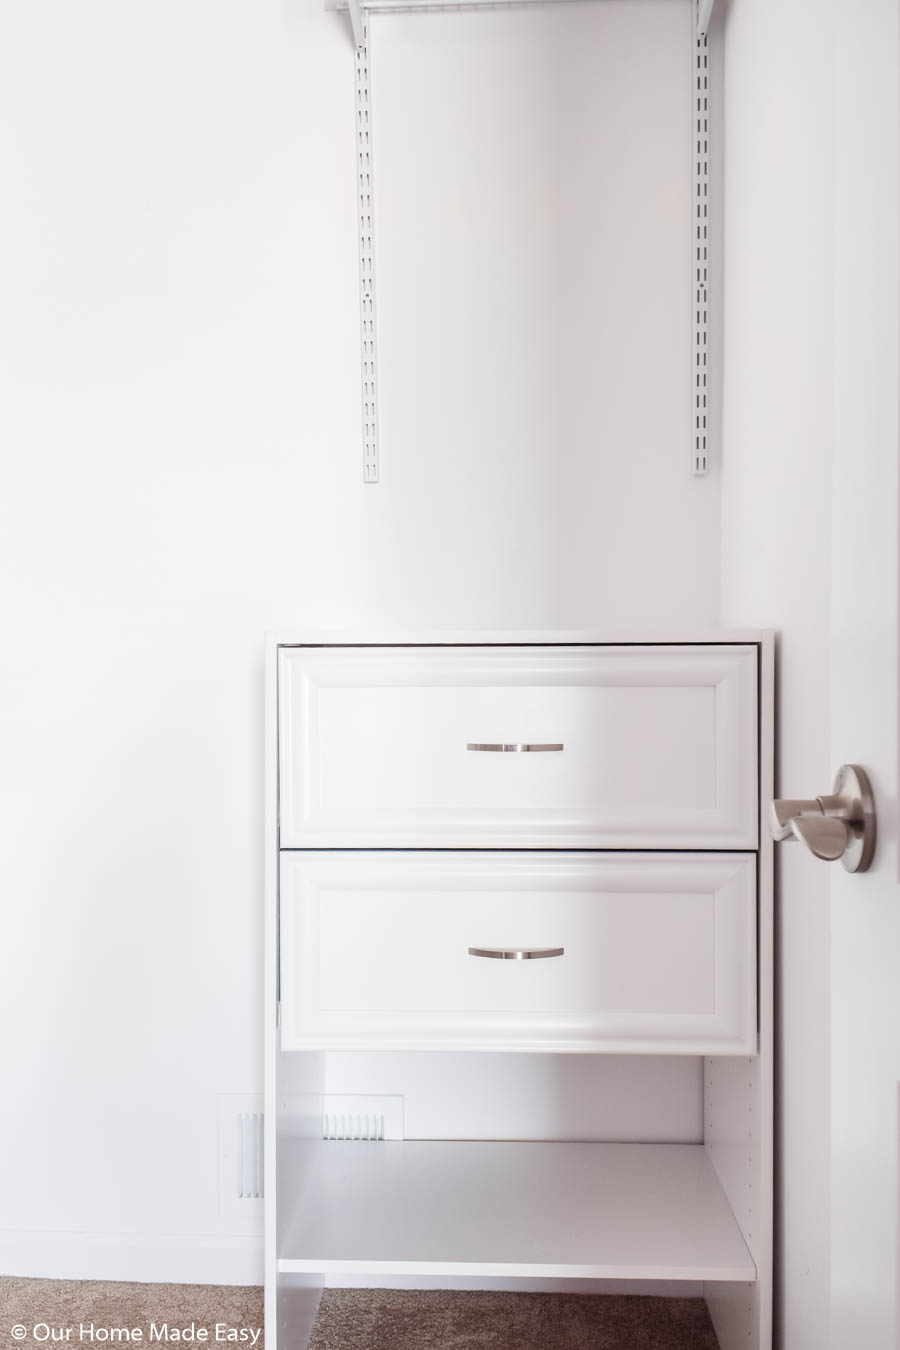 This new 2 drawer dresser add the perfect amount of storage in our daughter's bedroom closet